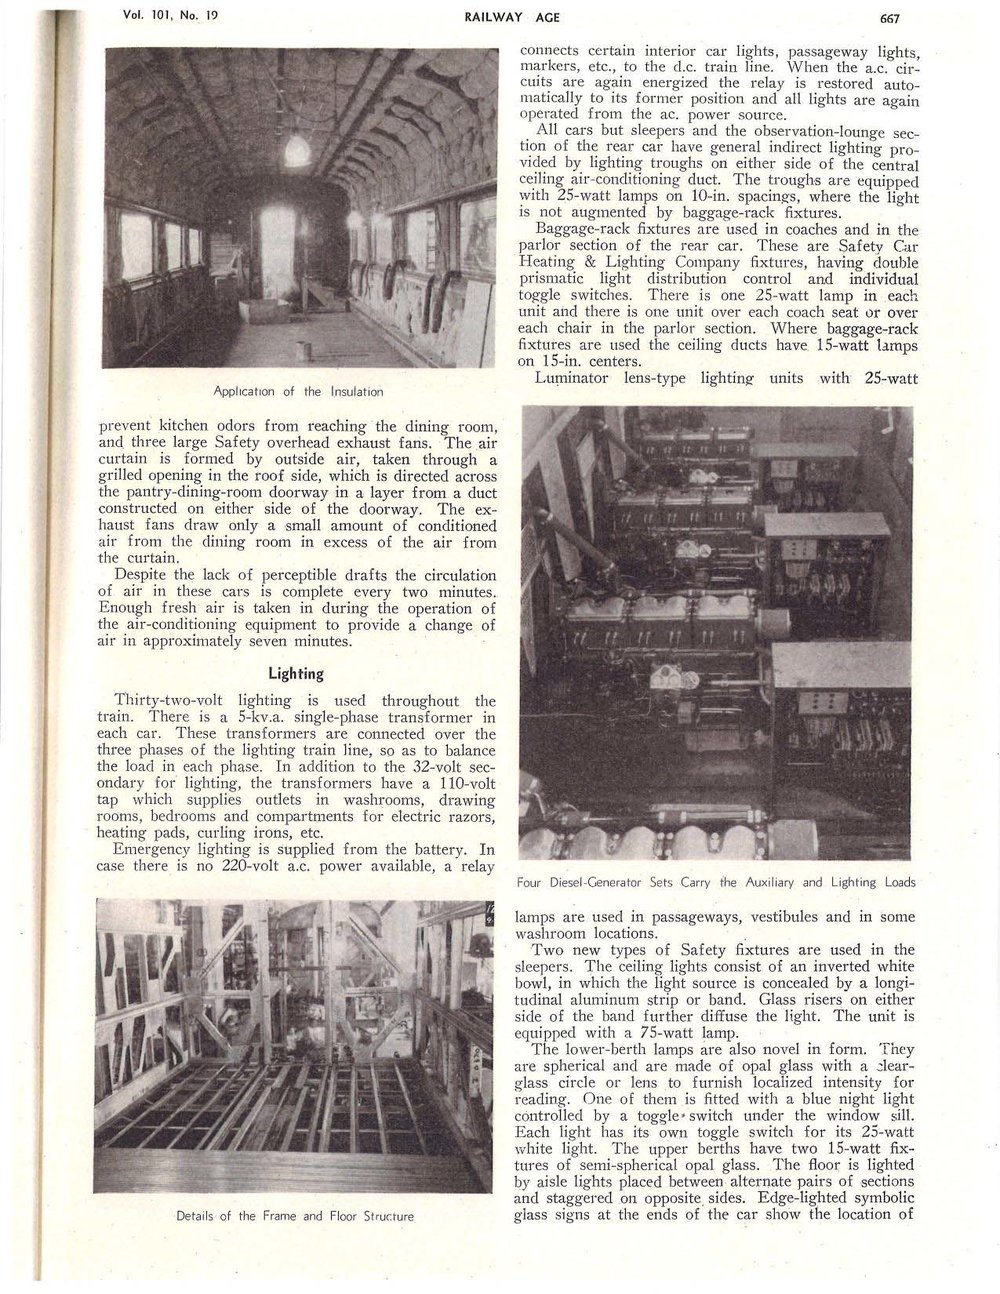 1936+Railway+Age+Article+-+Compressed 10.jpg